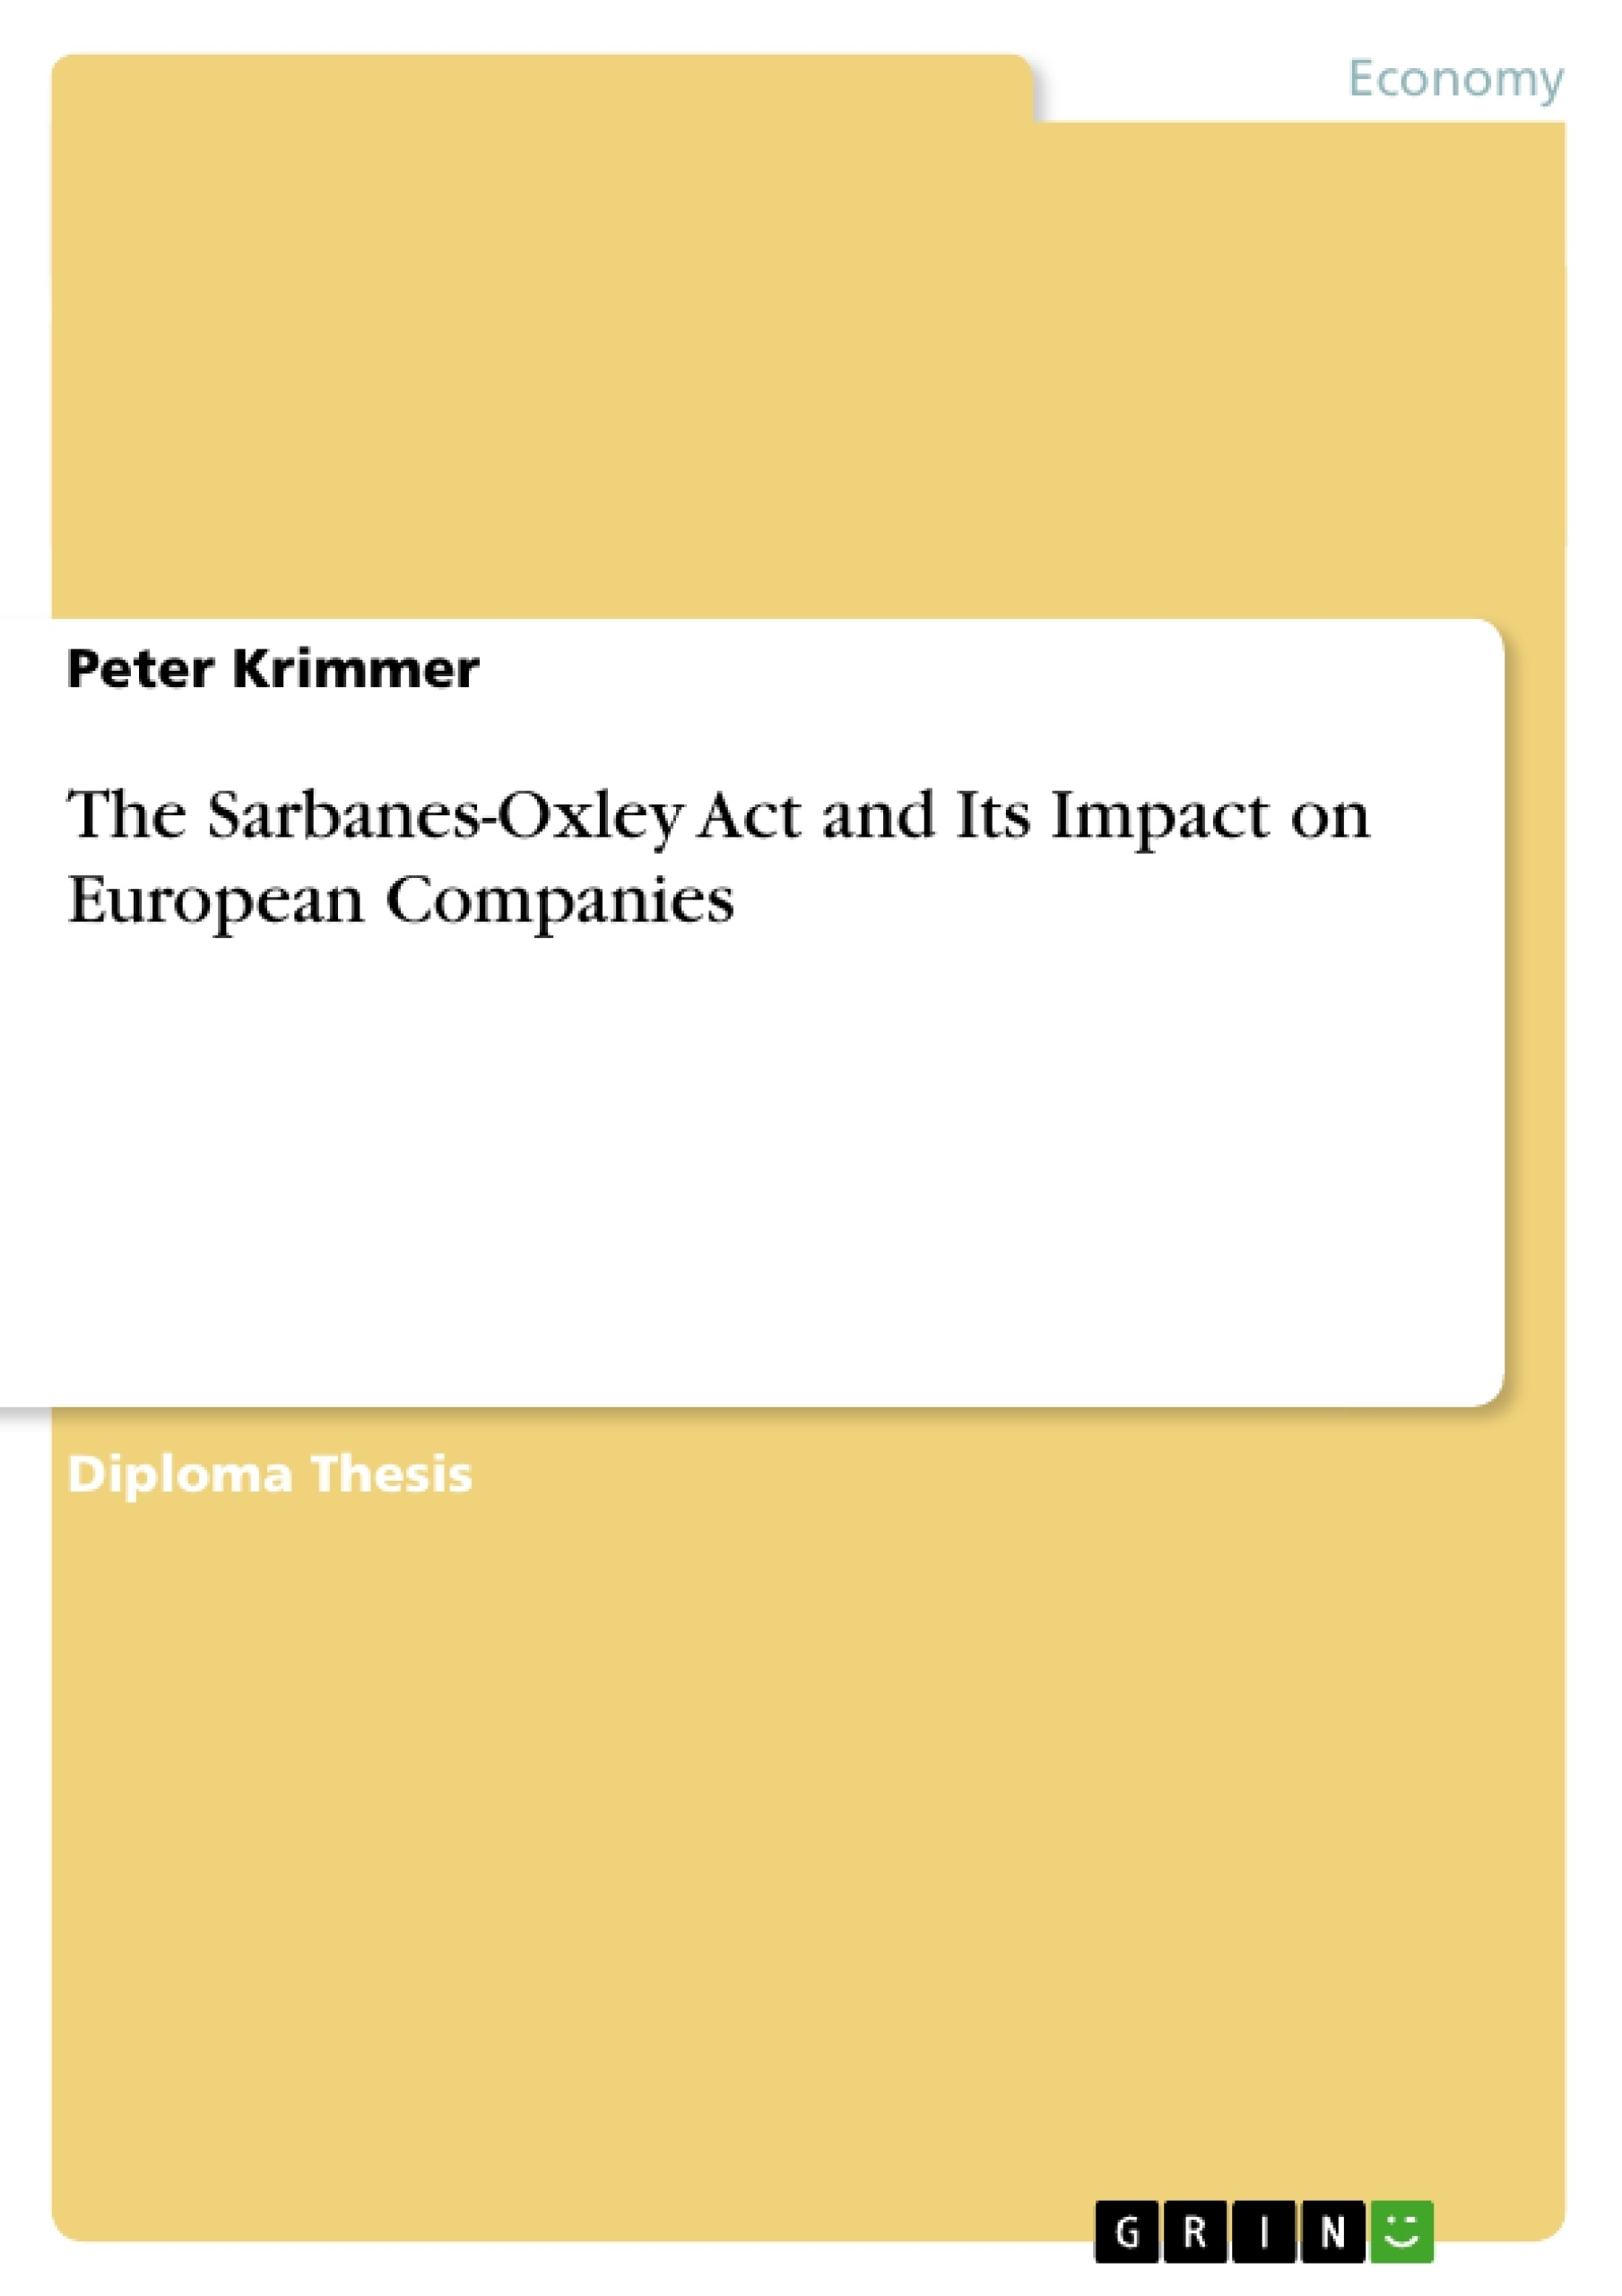 Título: The Sarbanes-Oxley Act and Its Impact on European Companies